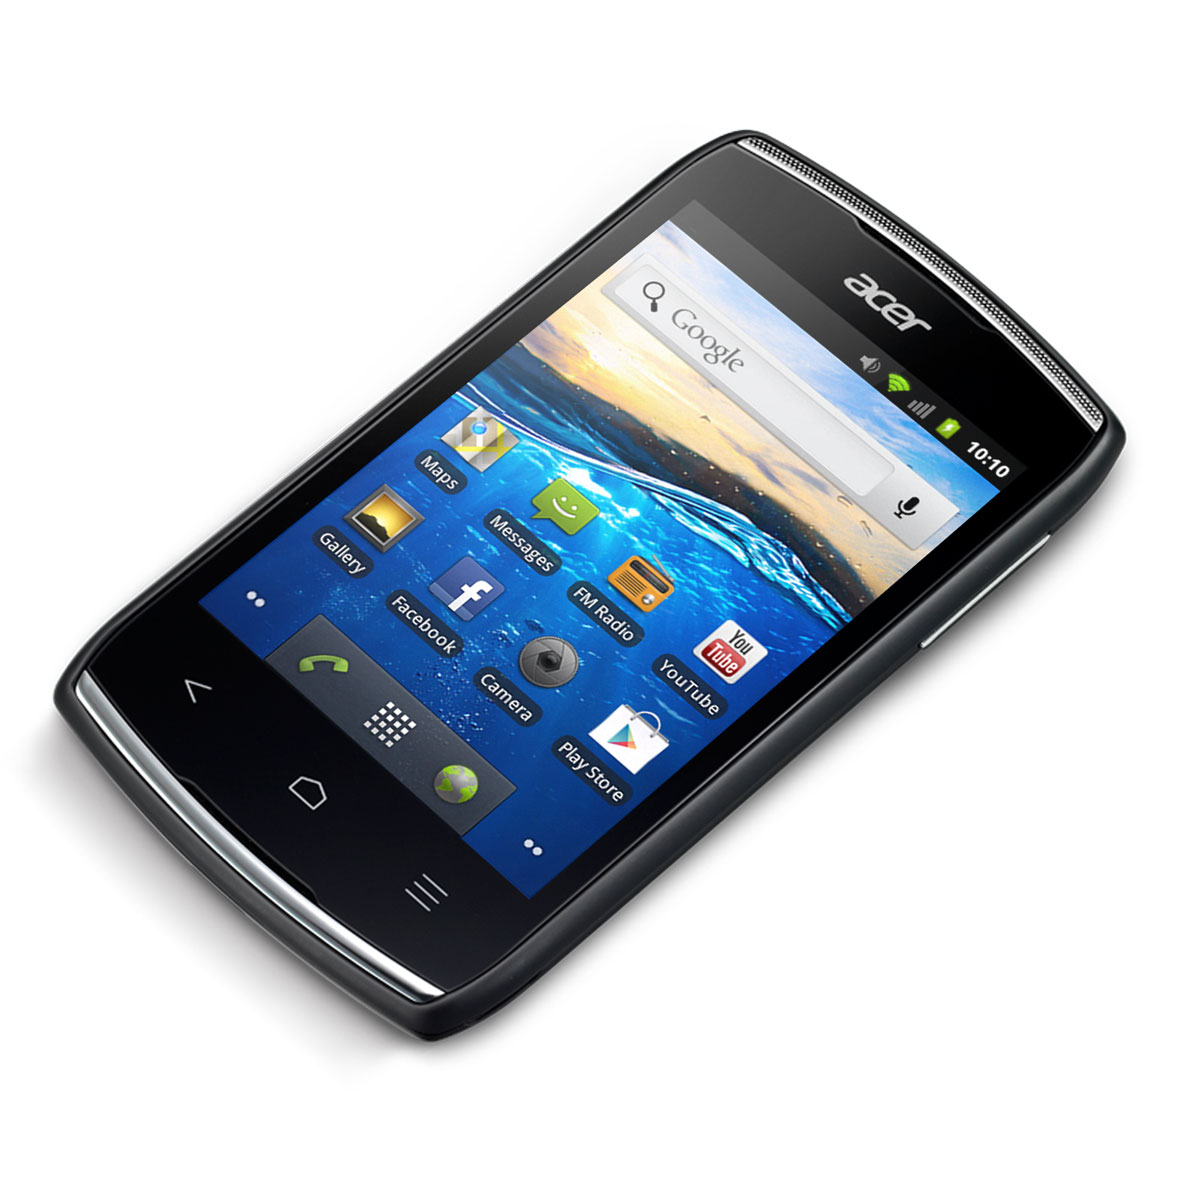 acer liquid z110 duo gentle black hm achat vente mobile smartphone sur. Black Bedroom Furniture Sets. Home Design Ideas